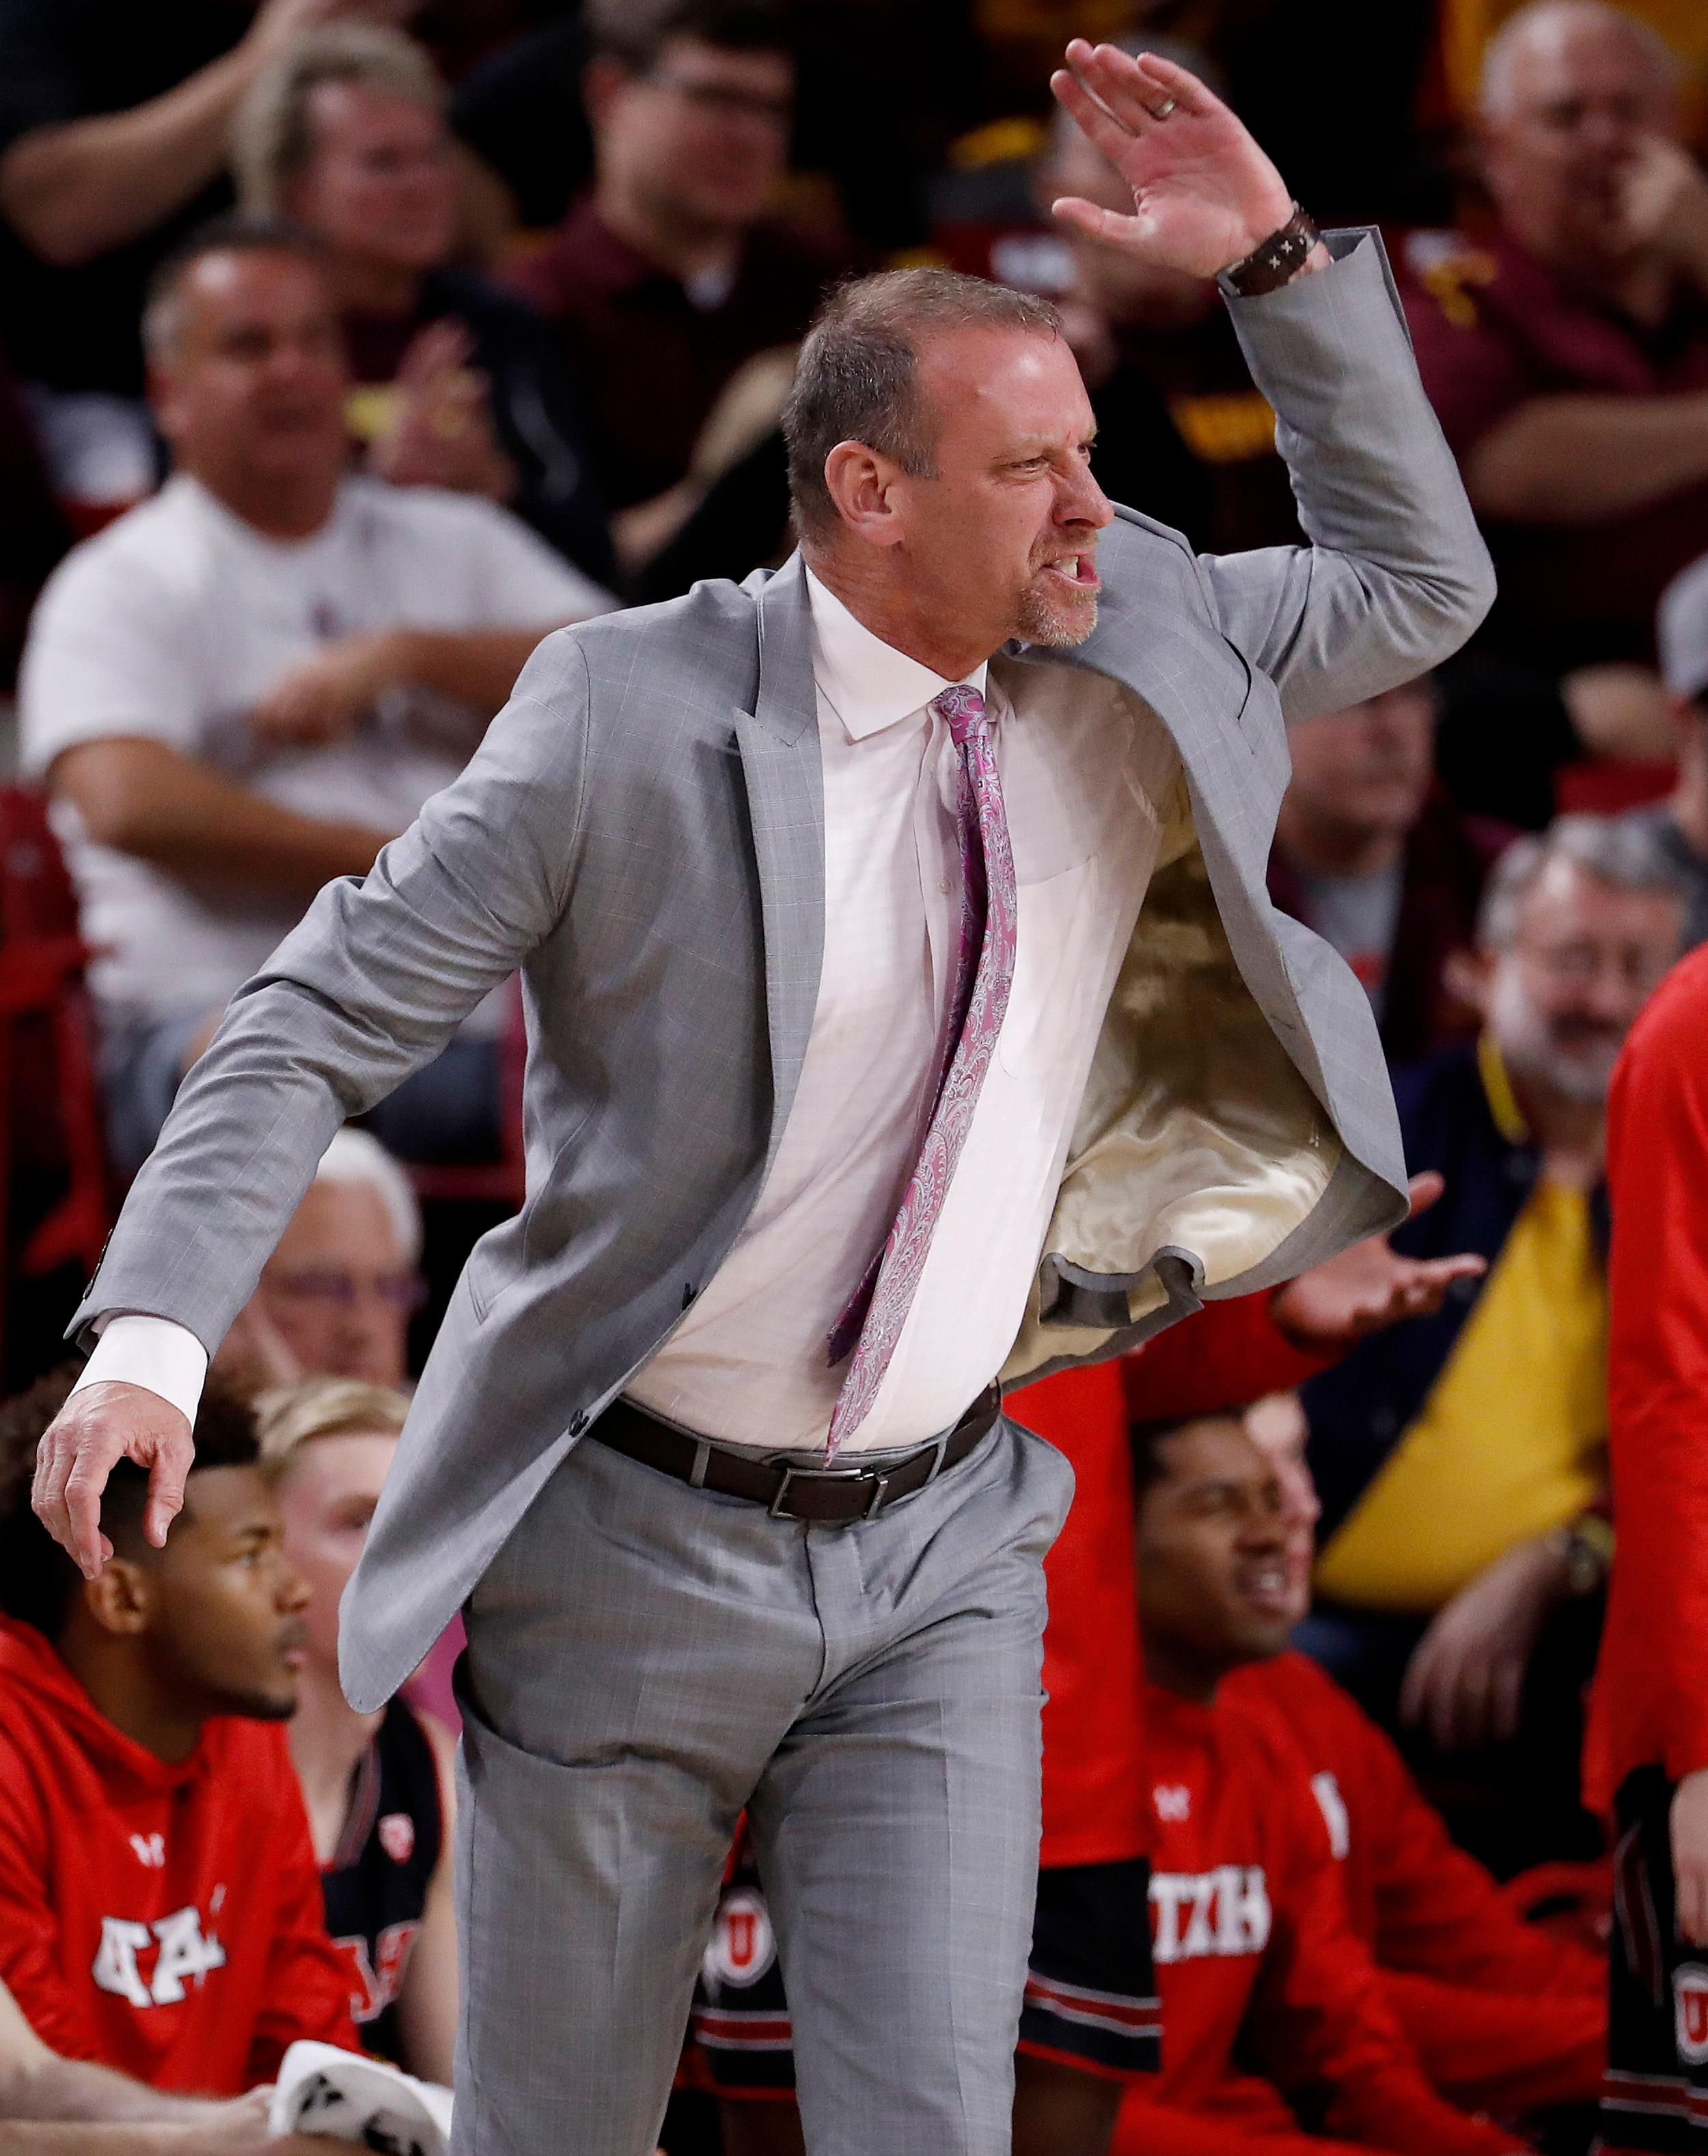 Utah head coach Larry Krystkowiak reacts to a cal during the first half of an NCAA college basketball game against Arizona State, Thursday, Jan. 25, 2018, in Tempe, Ariz. (AP Photo/Matt York)